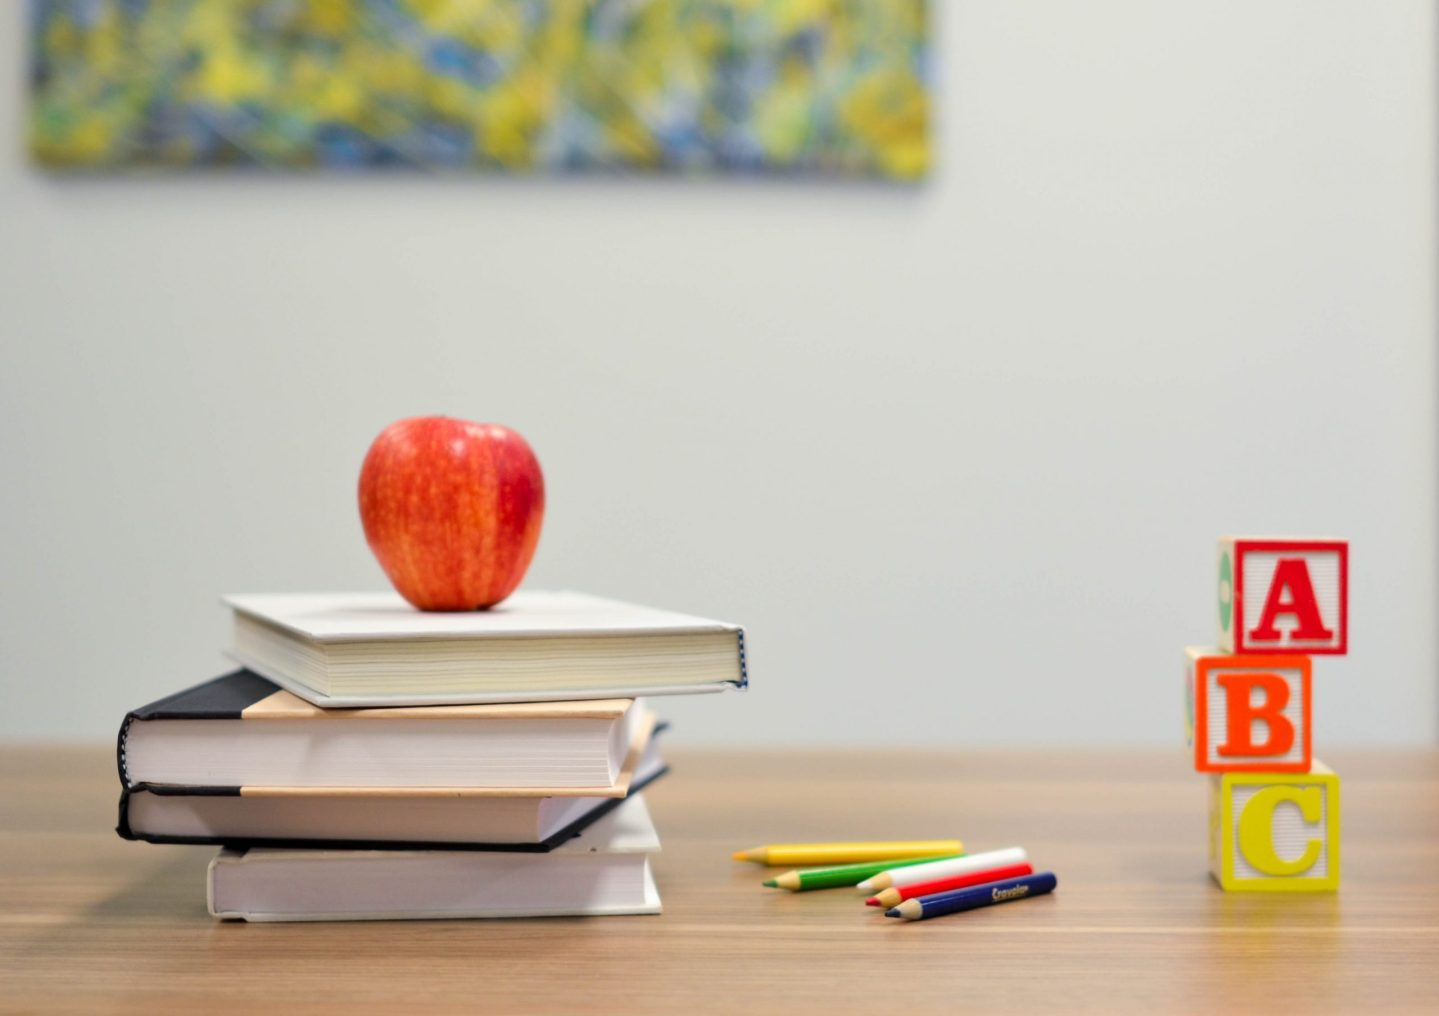 Online Home Learning & Education Resources For Kids